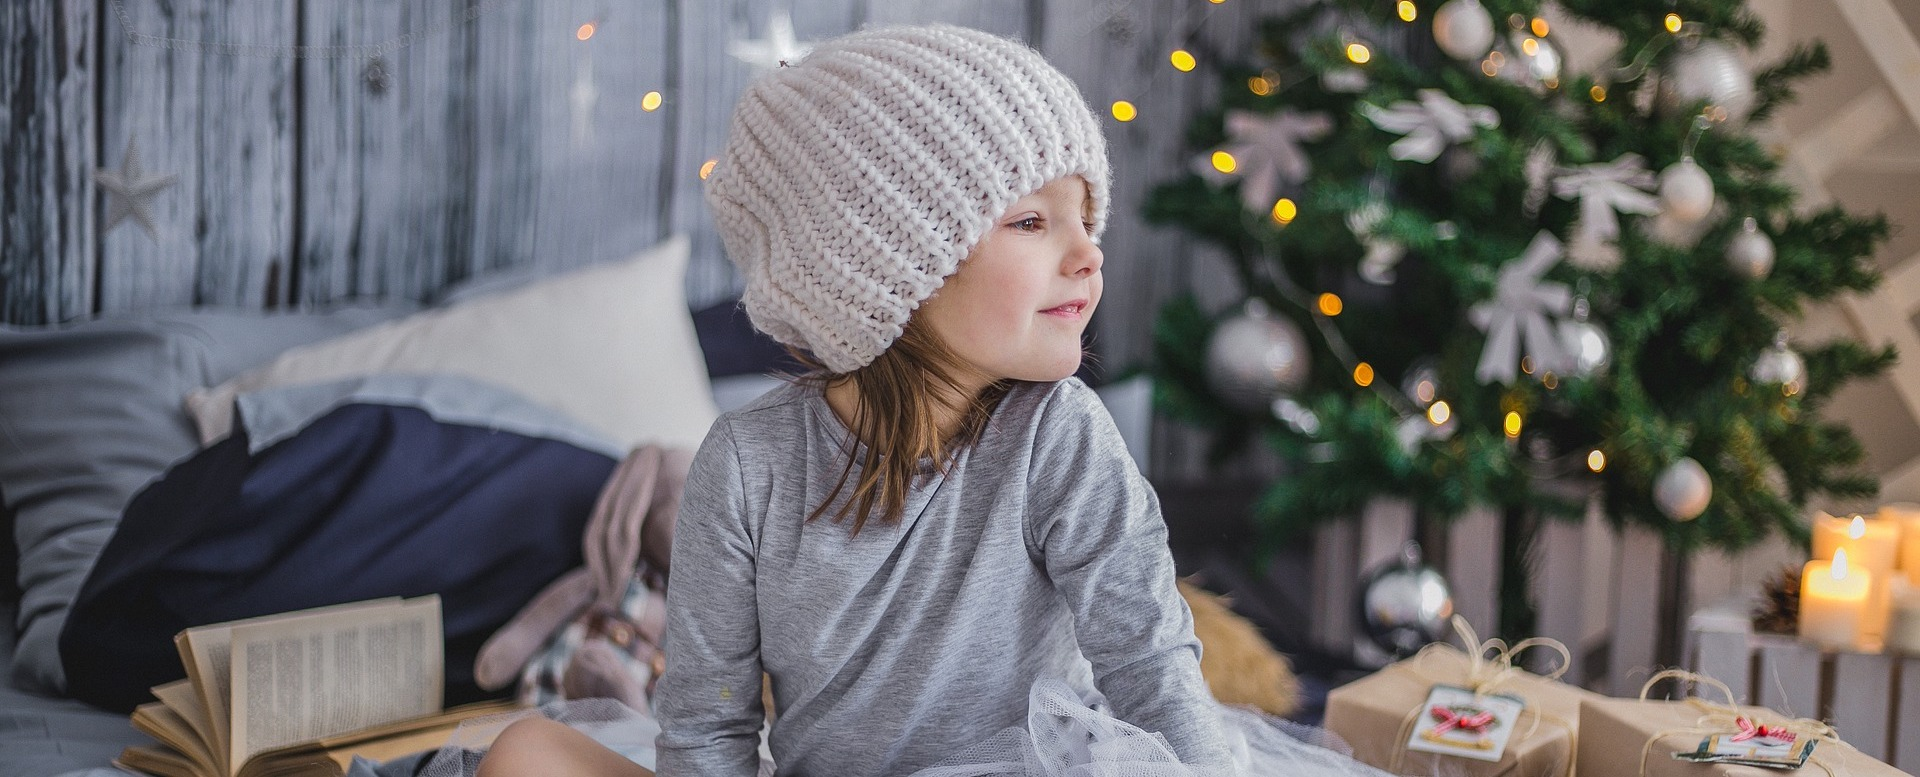 Amazon released it's holiday gift guide for the little ones